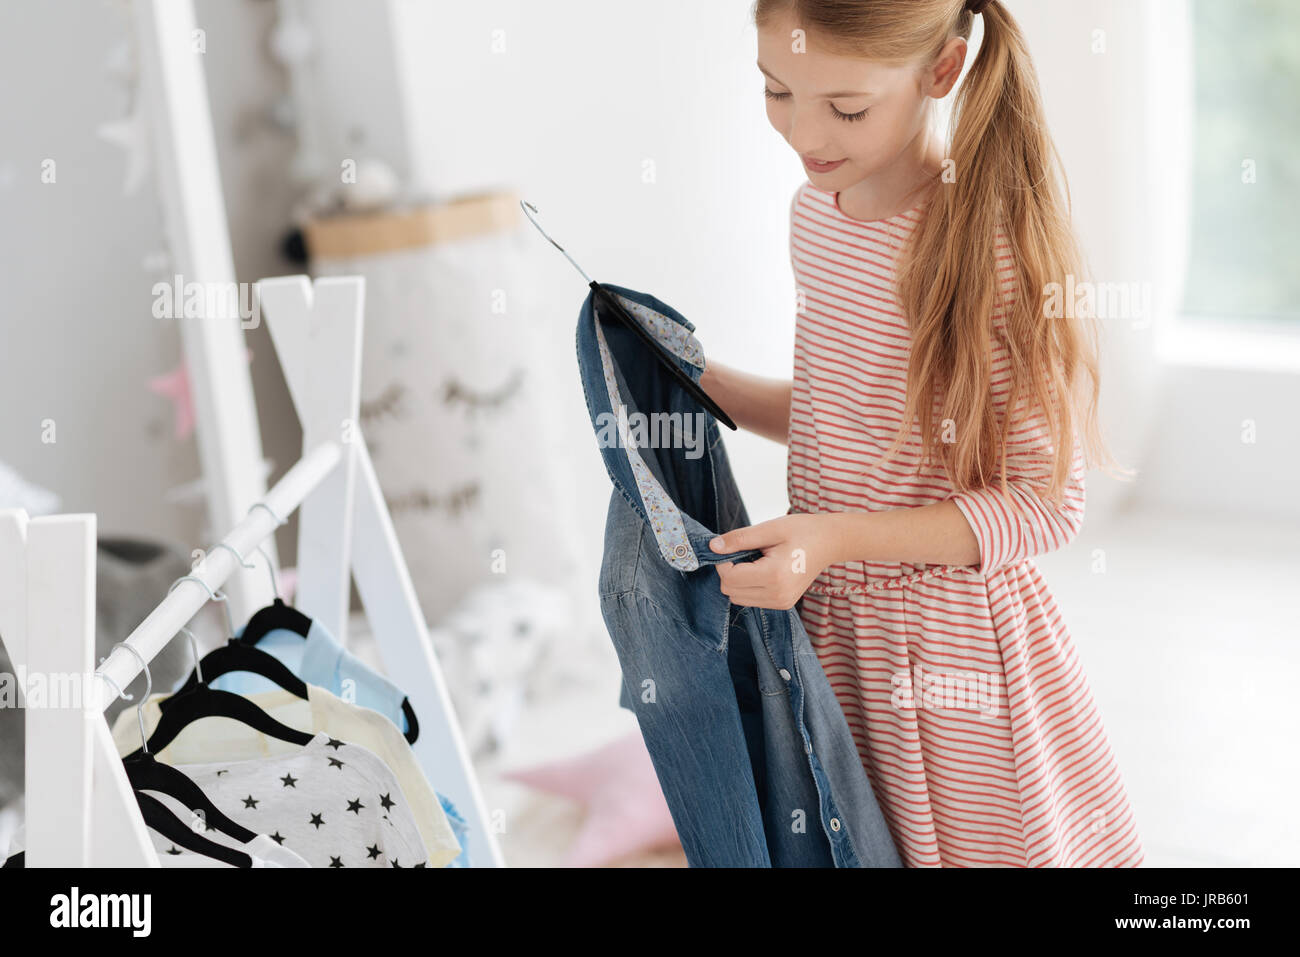 Young lady looking at denim shirt while choosing outfit - Stock Image